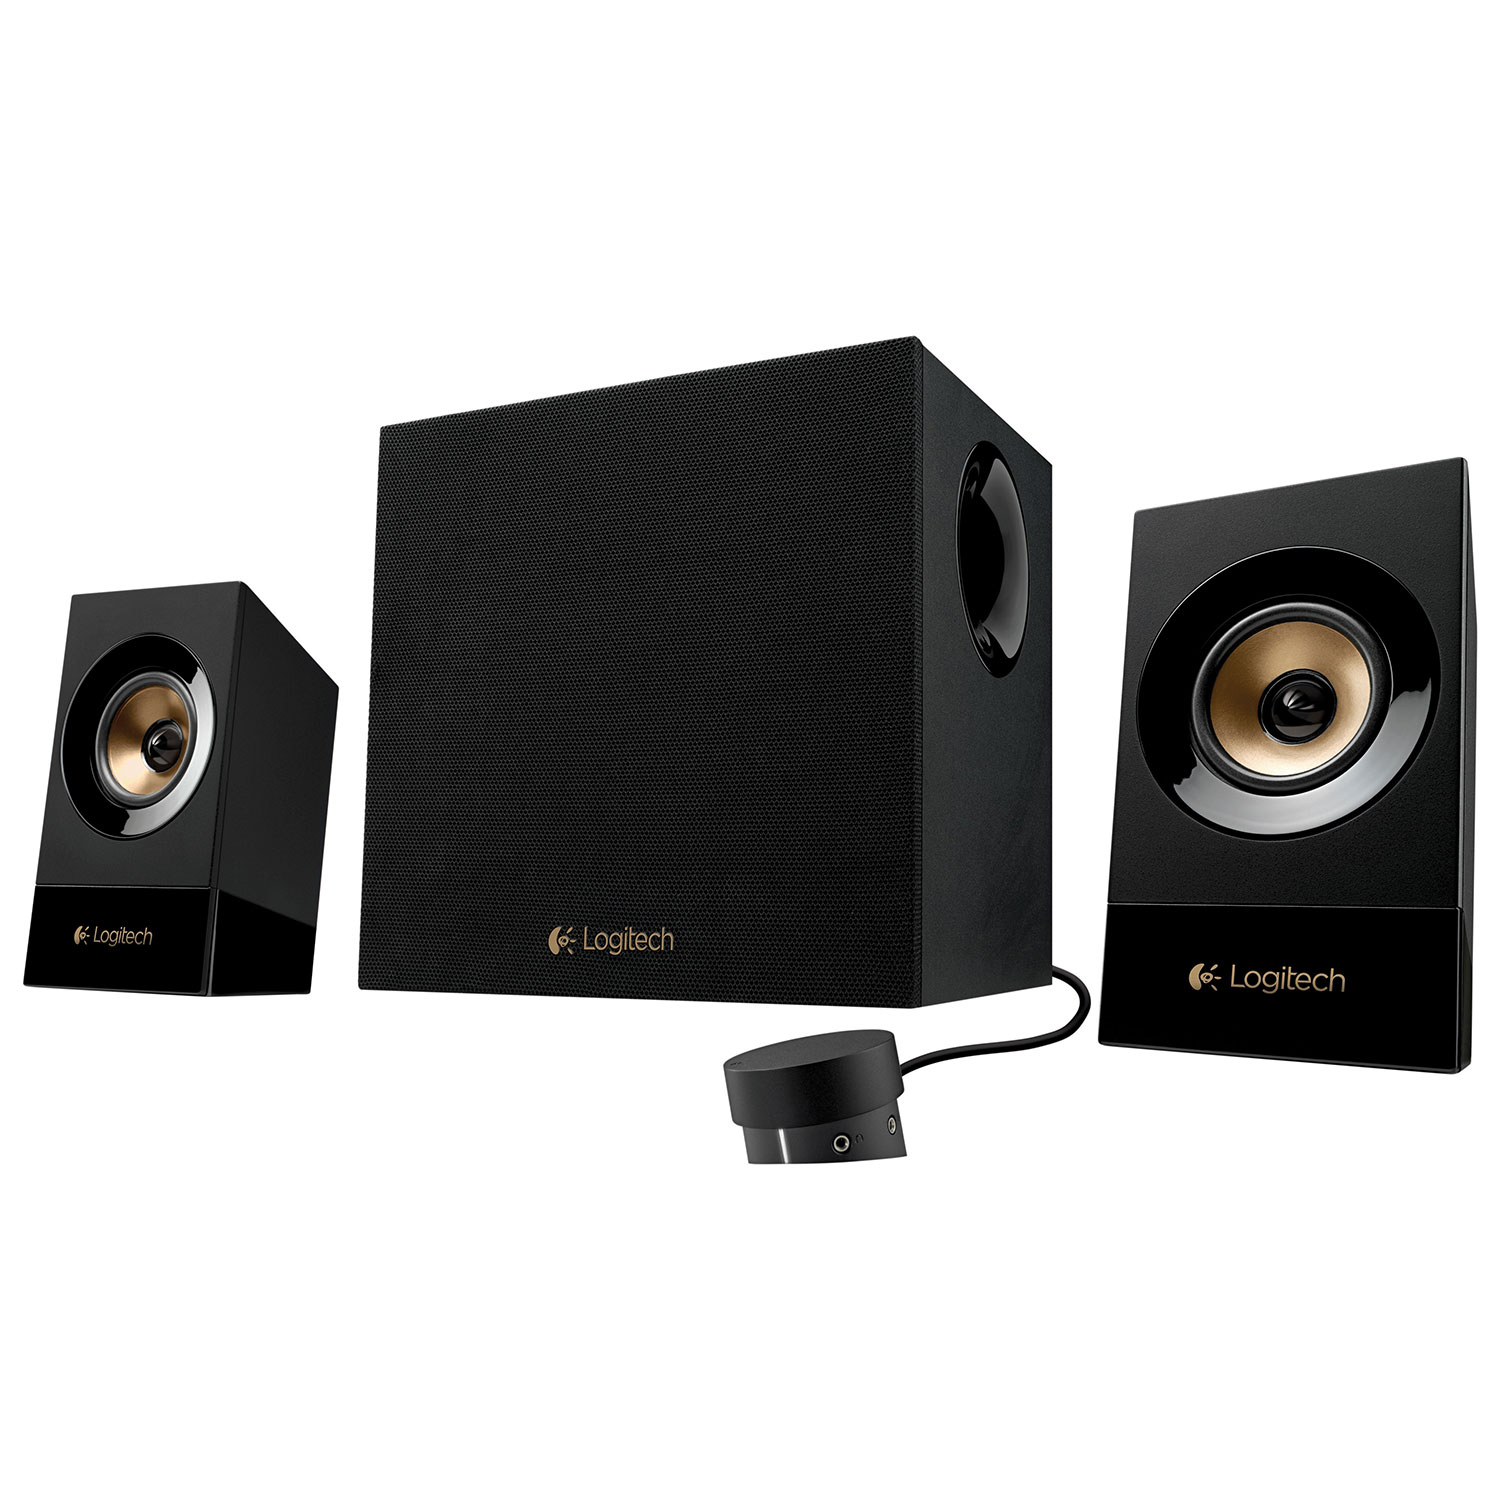 Refurbished Logitech Z533 3 Piece 2.1 Multimedia Speaker System 3.5mm Jack - 980-001053